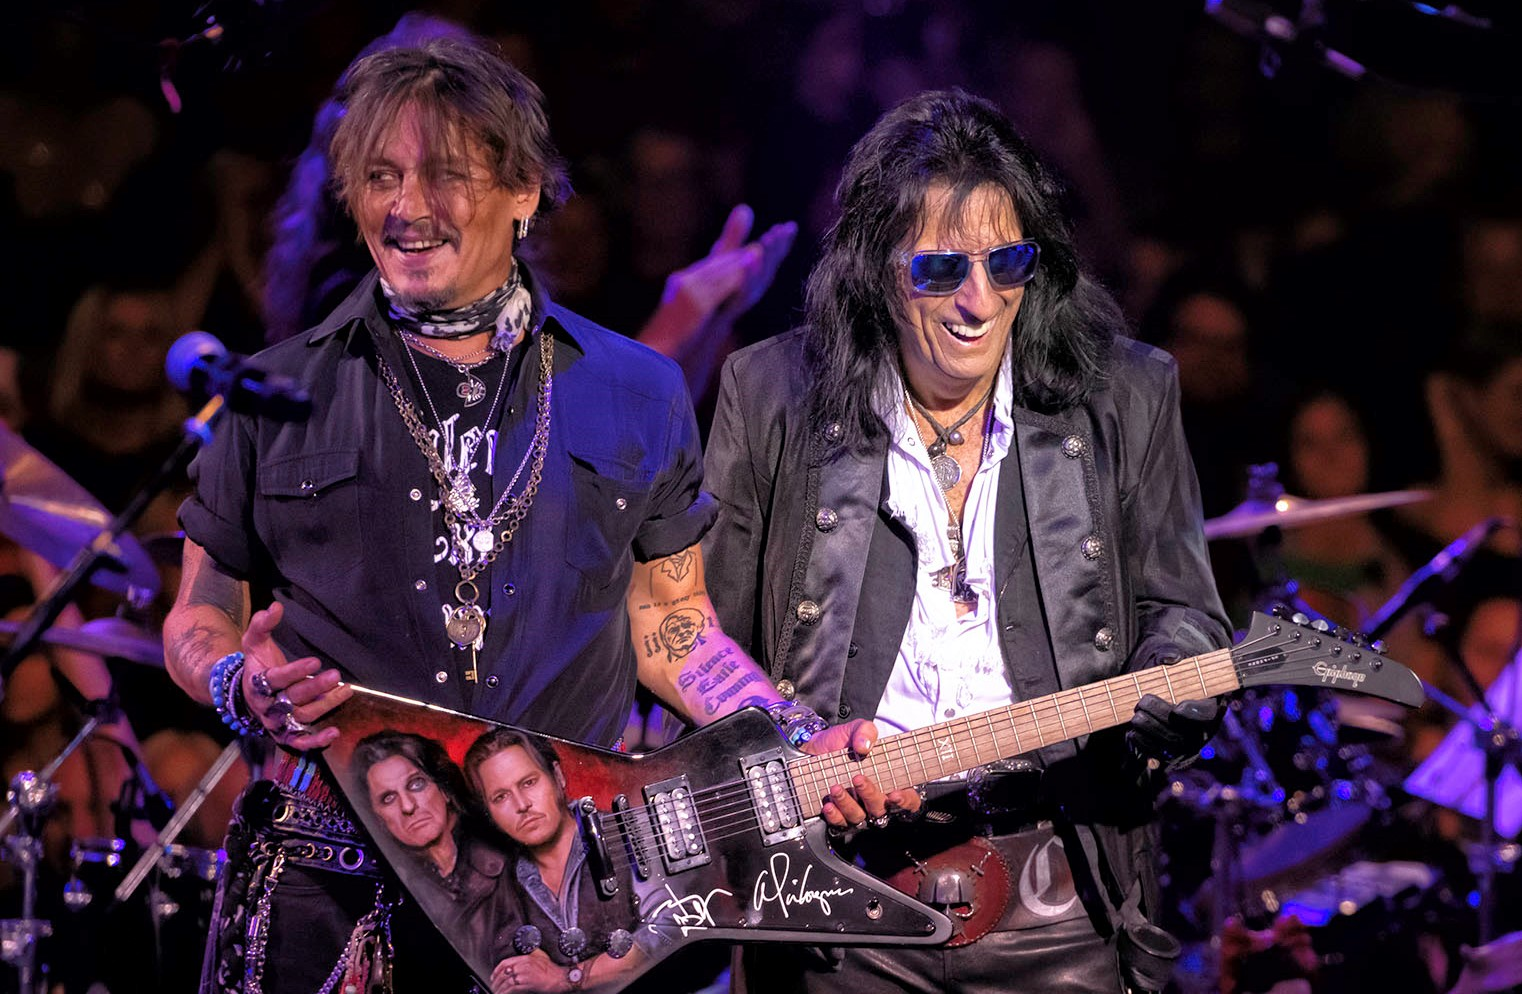 Alice Coopers Christmas Pudding 2020 Alice Cooper's Christmas Pudding Wins Again With Johnny Depp, Rob